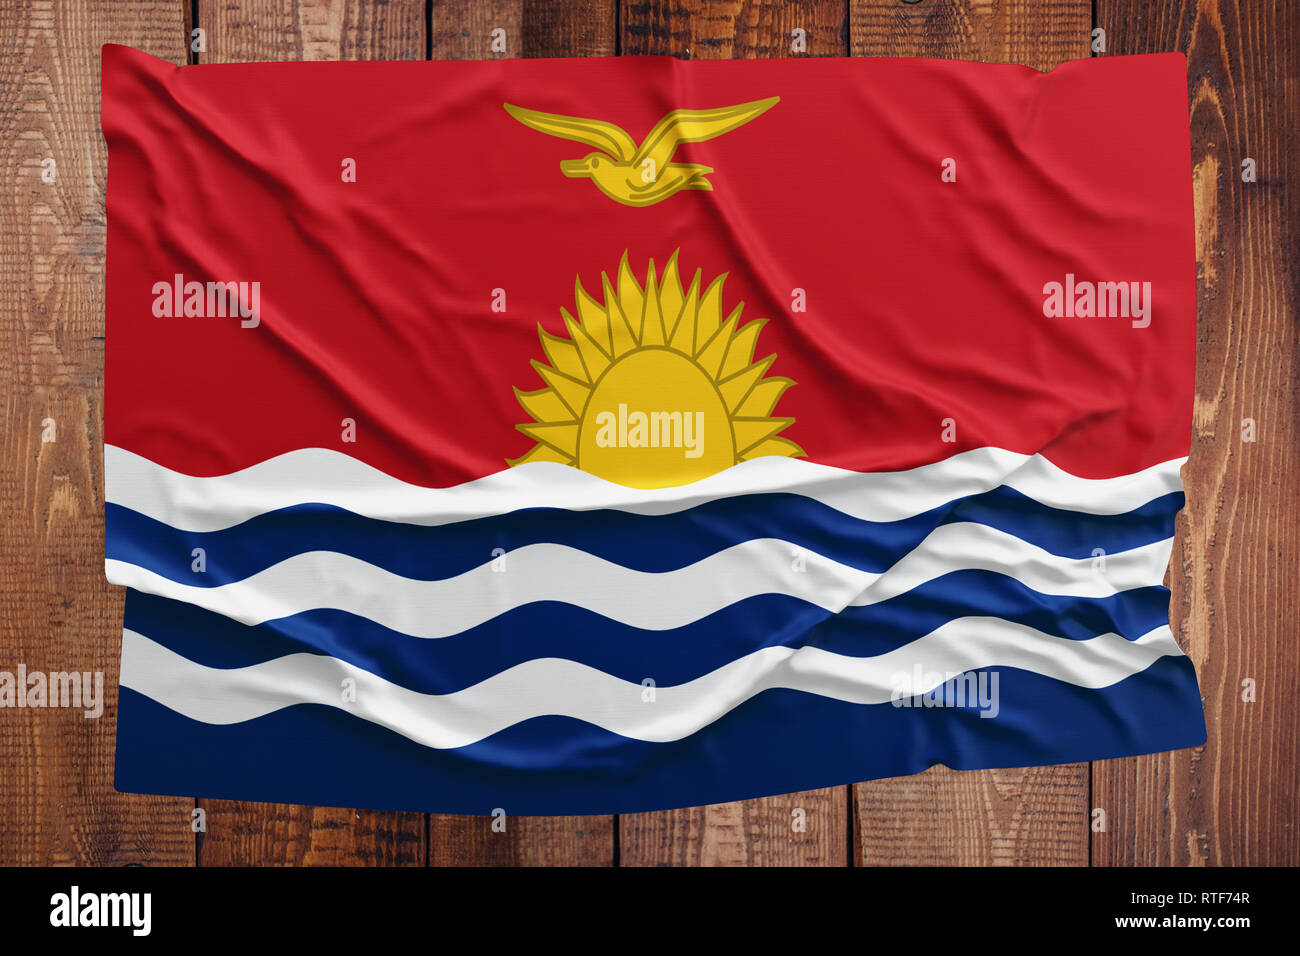 Flag of Kiribati on a wooden table background. Wrinkled flag top view. - Stock Image